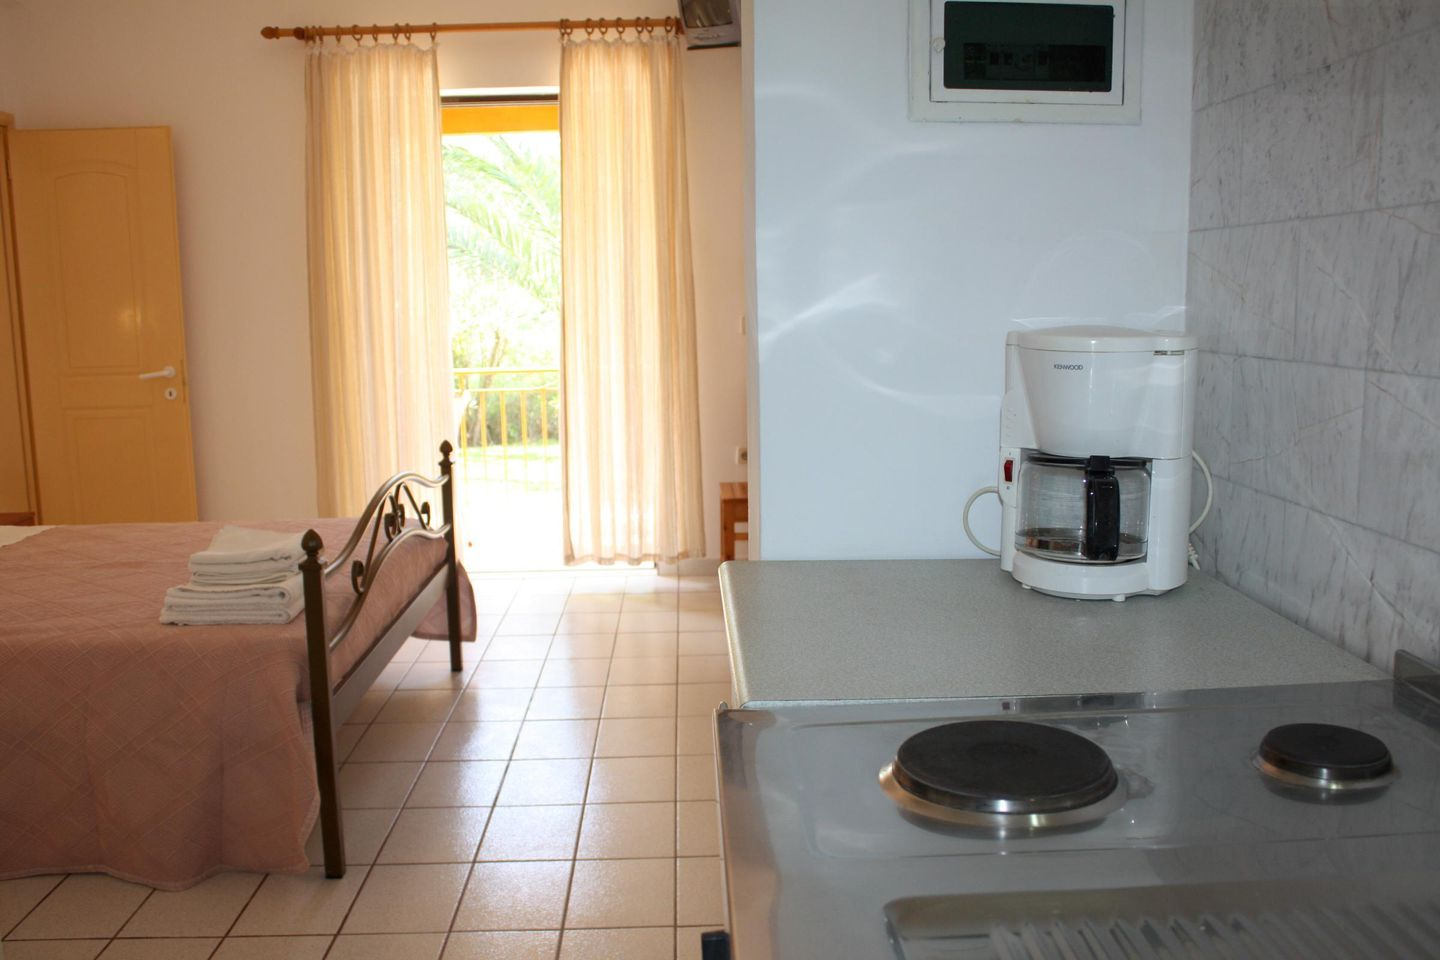 Holiday apartment IRINI-APPARTEMENT (499956), Aghios Petros, Corfu, Ionian Islands, Greece, picture 12